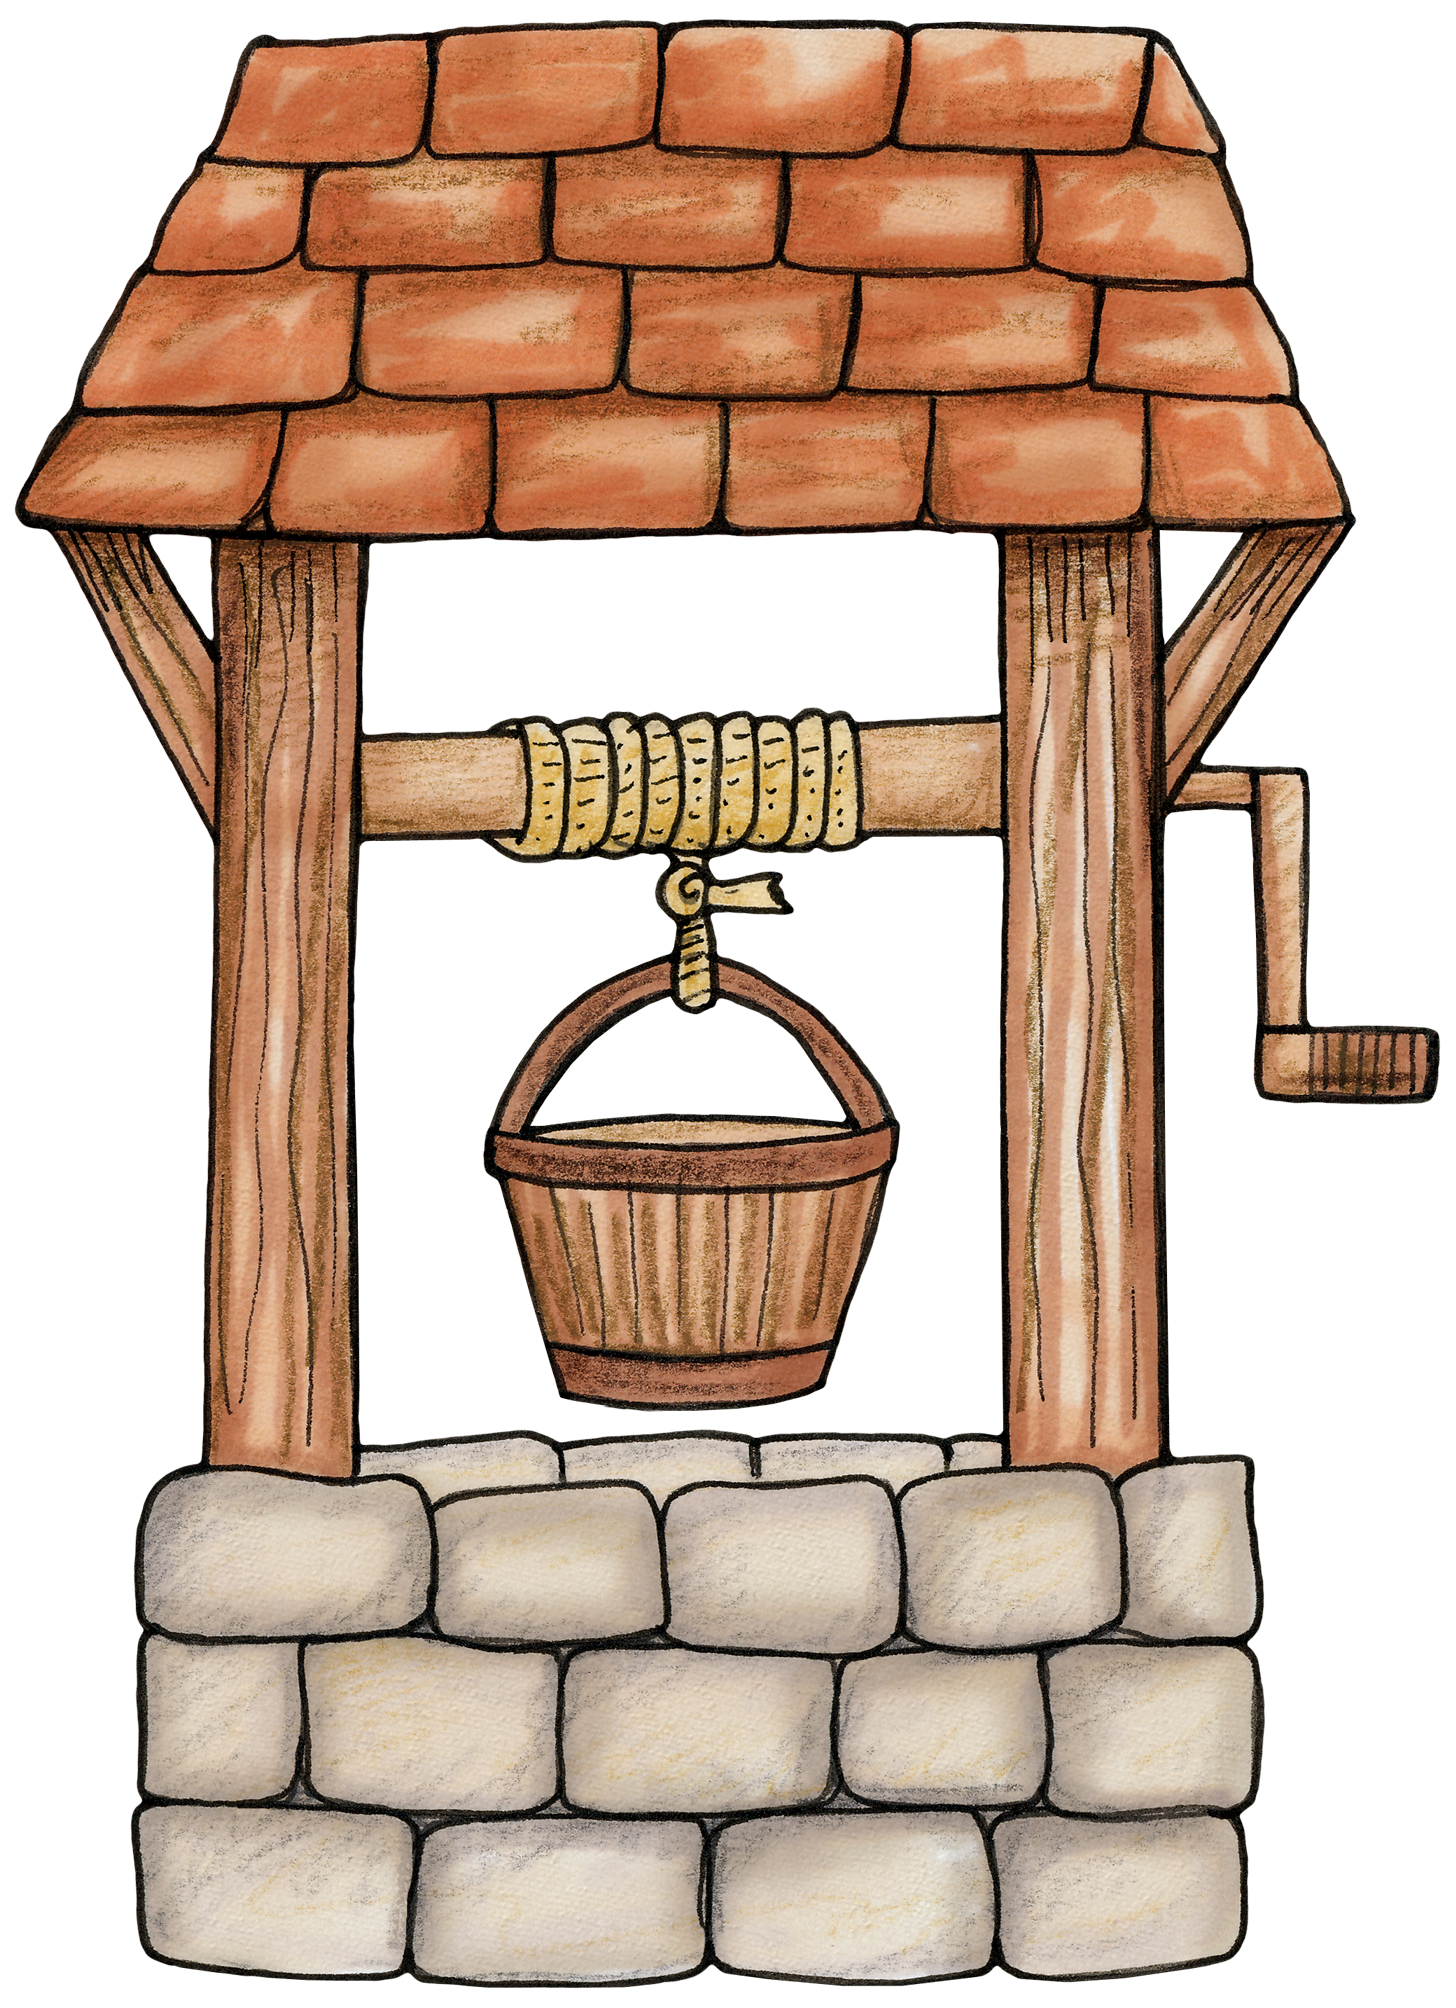 Forest clipart enchanted forest. Wishing well for a